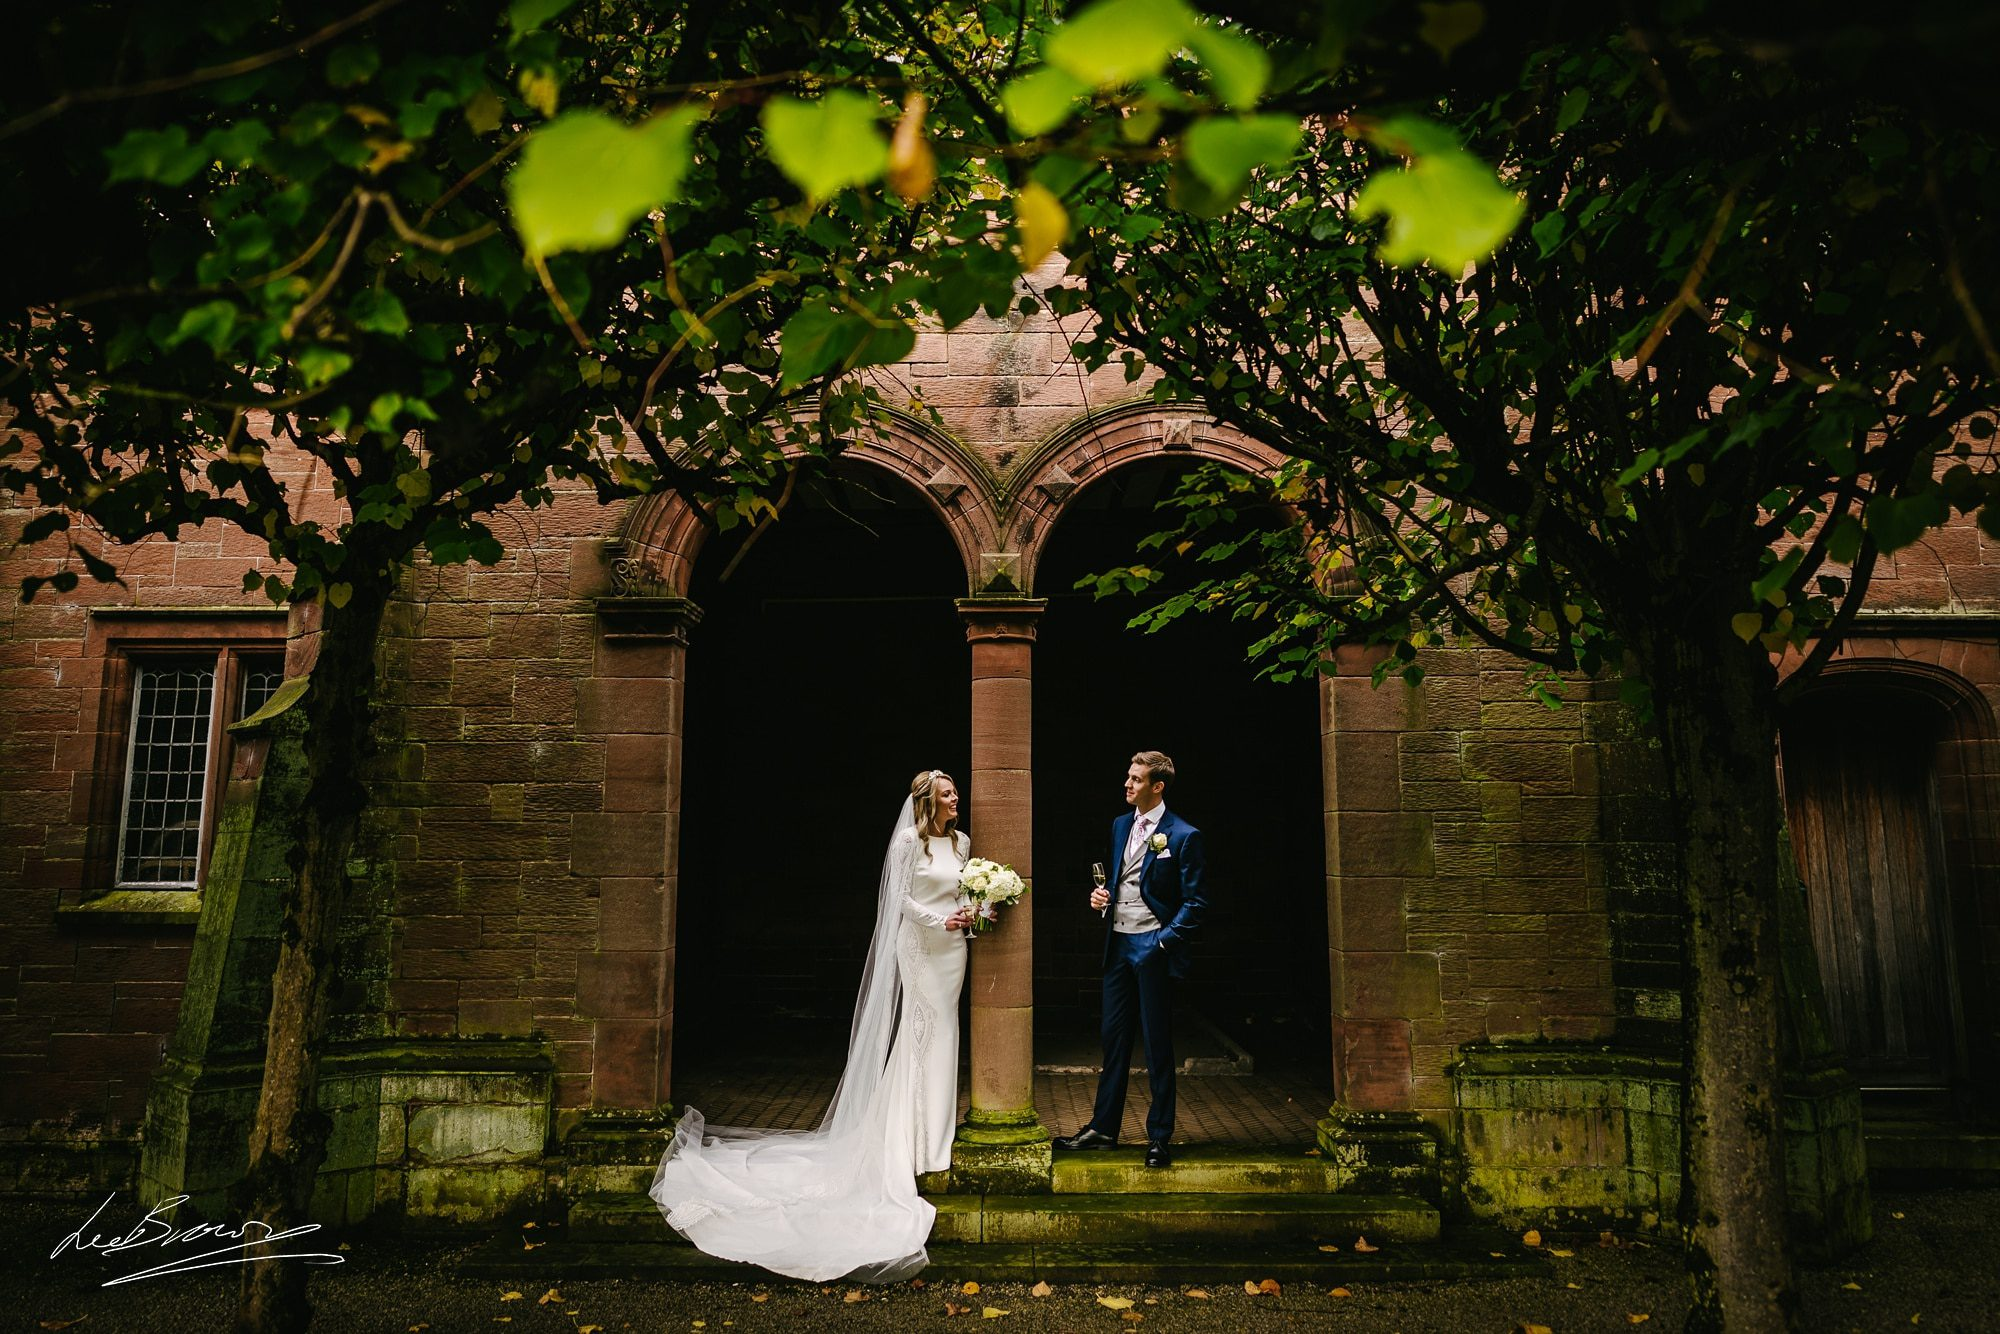 the bride and groom stood in the archway at thornton manor after their wedding ceremony